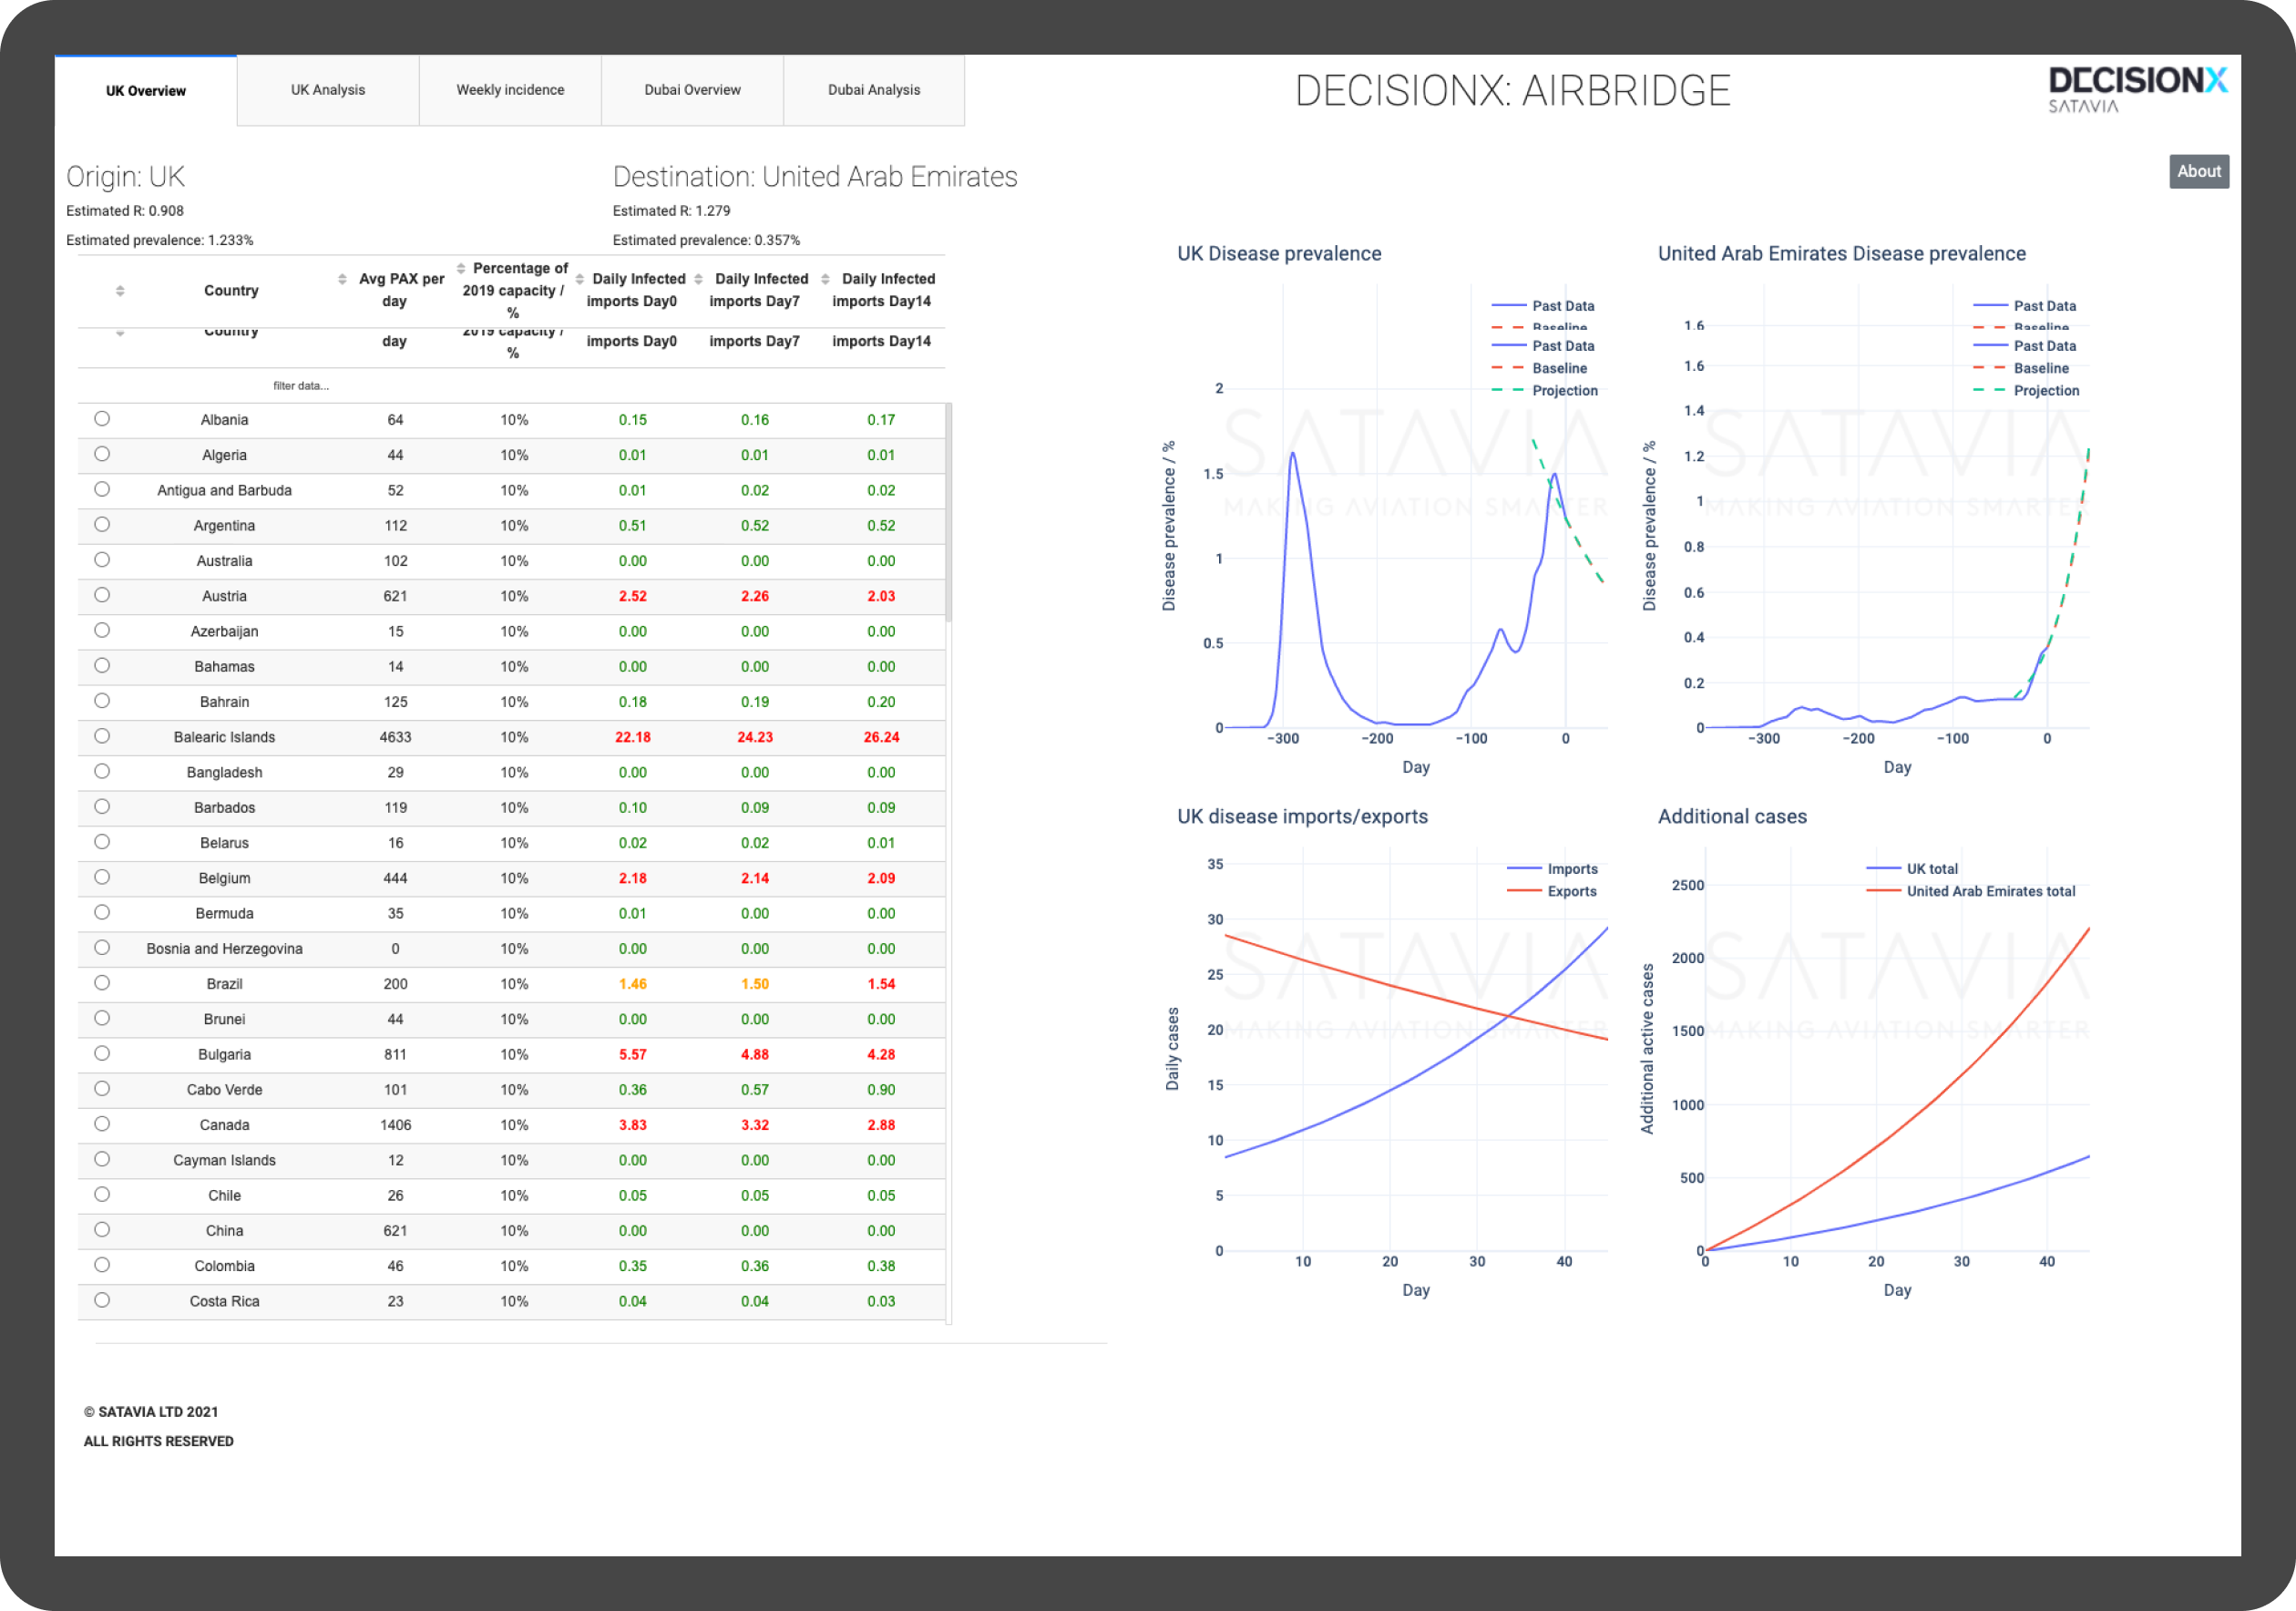 A preview of the DECISIONX:AIRBRIDGE dashboard